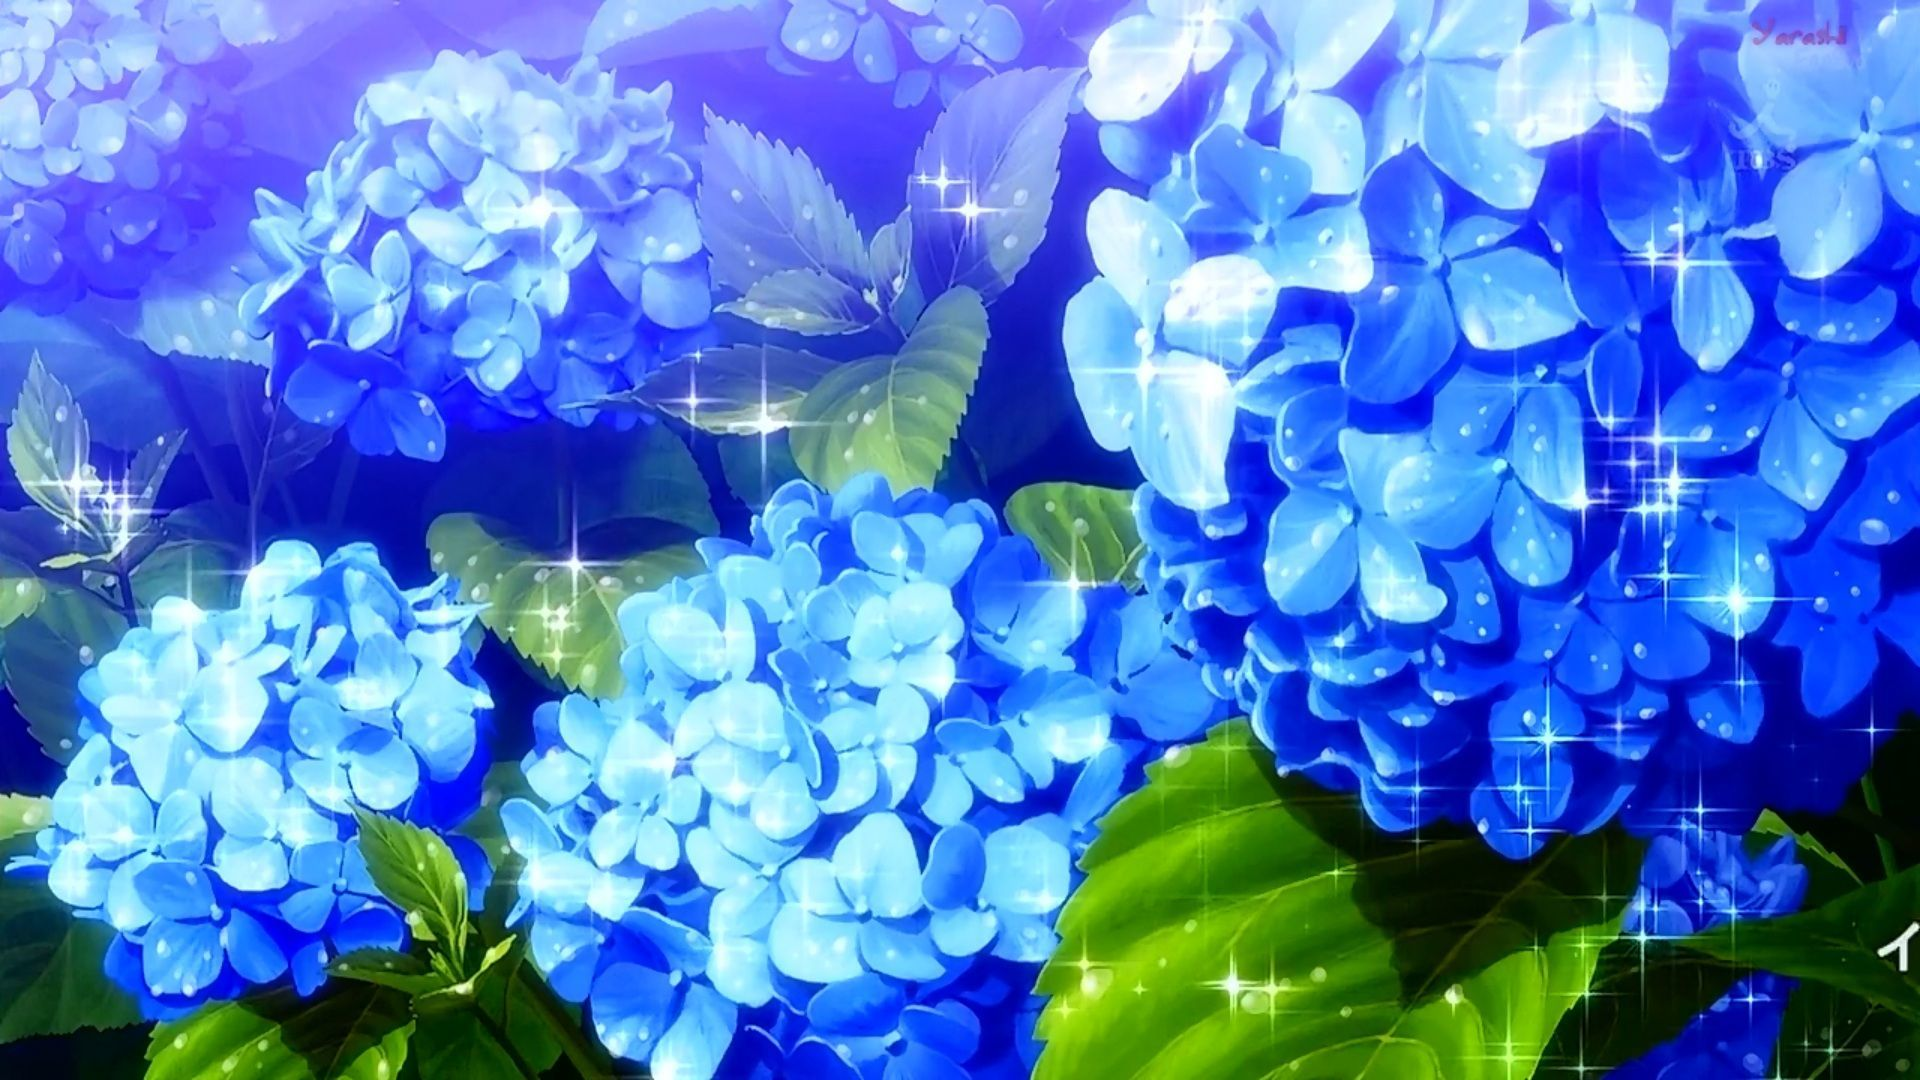 Anime Flower Wallpapers Top Free Anime Flower Backgrounds Wallpaperaccess